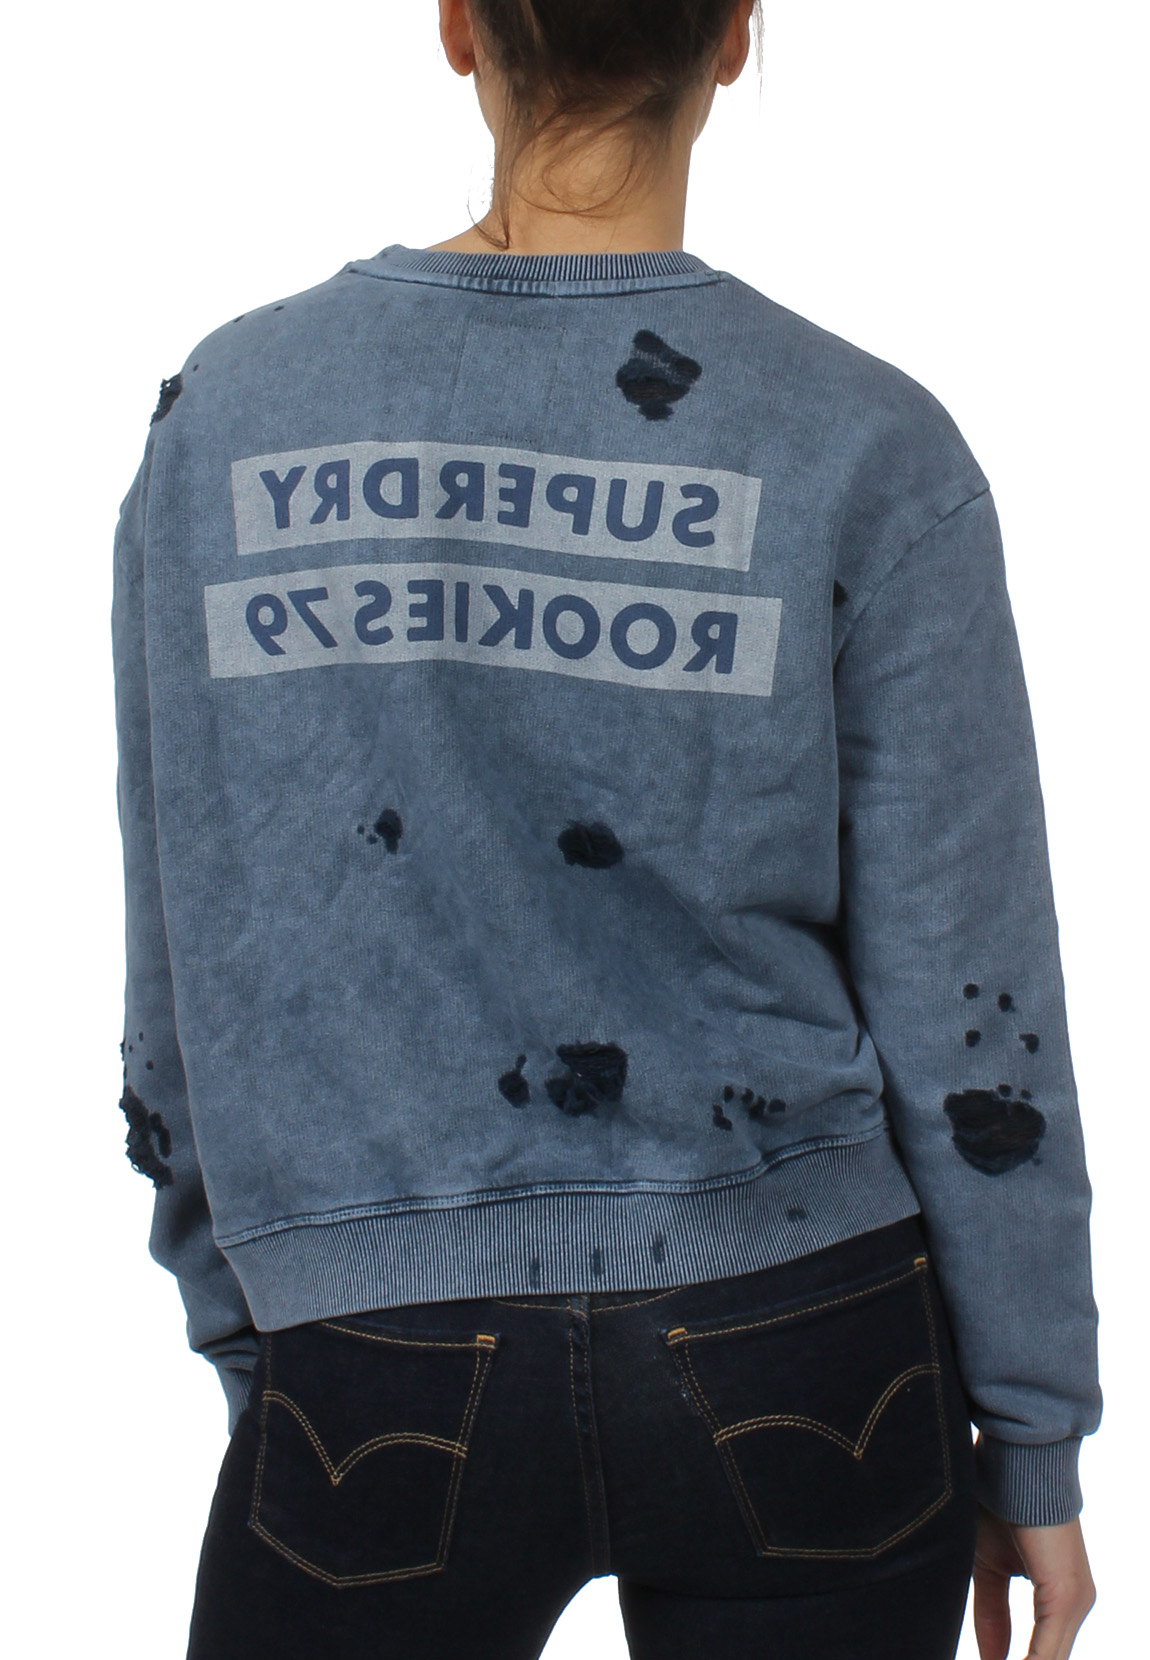 the best attitude 6bd8c 31ccb Details about Superdry Sweatshirt Ladies Distress Boxy Sweat Fret Blue